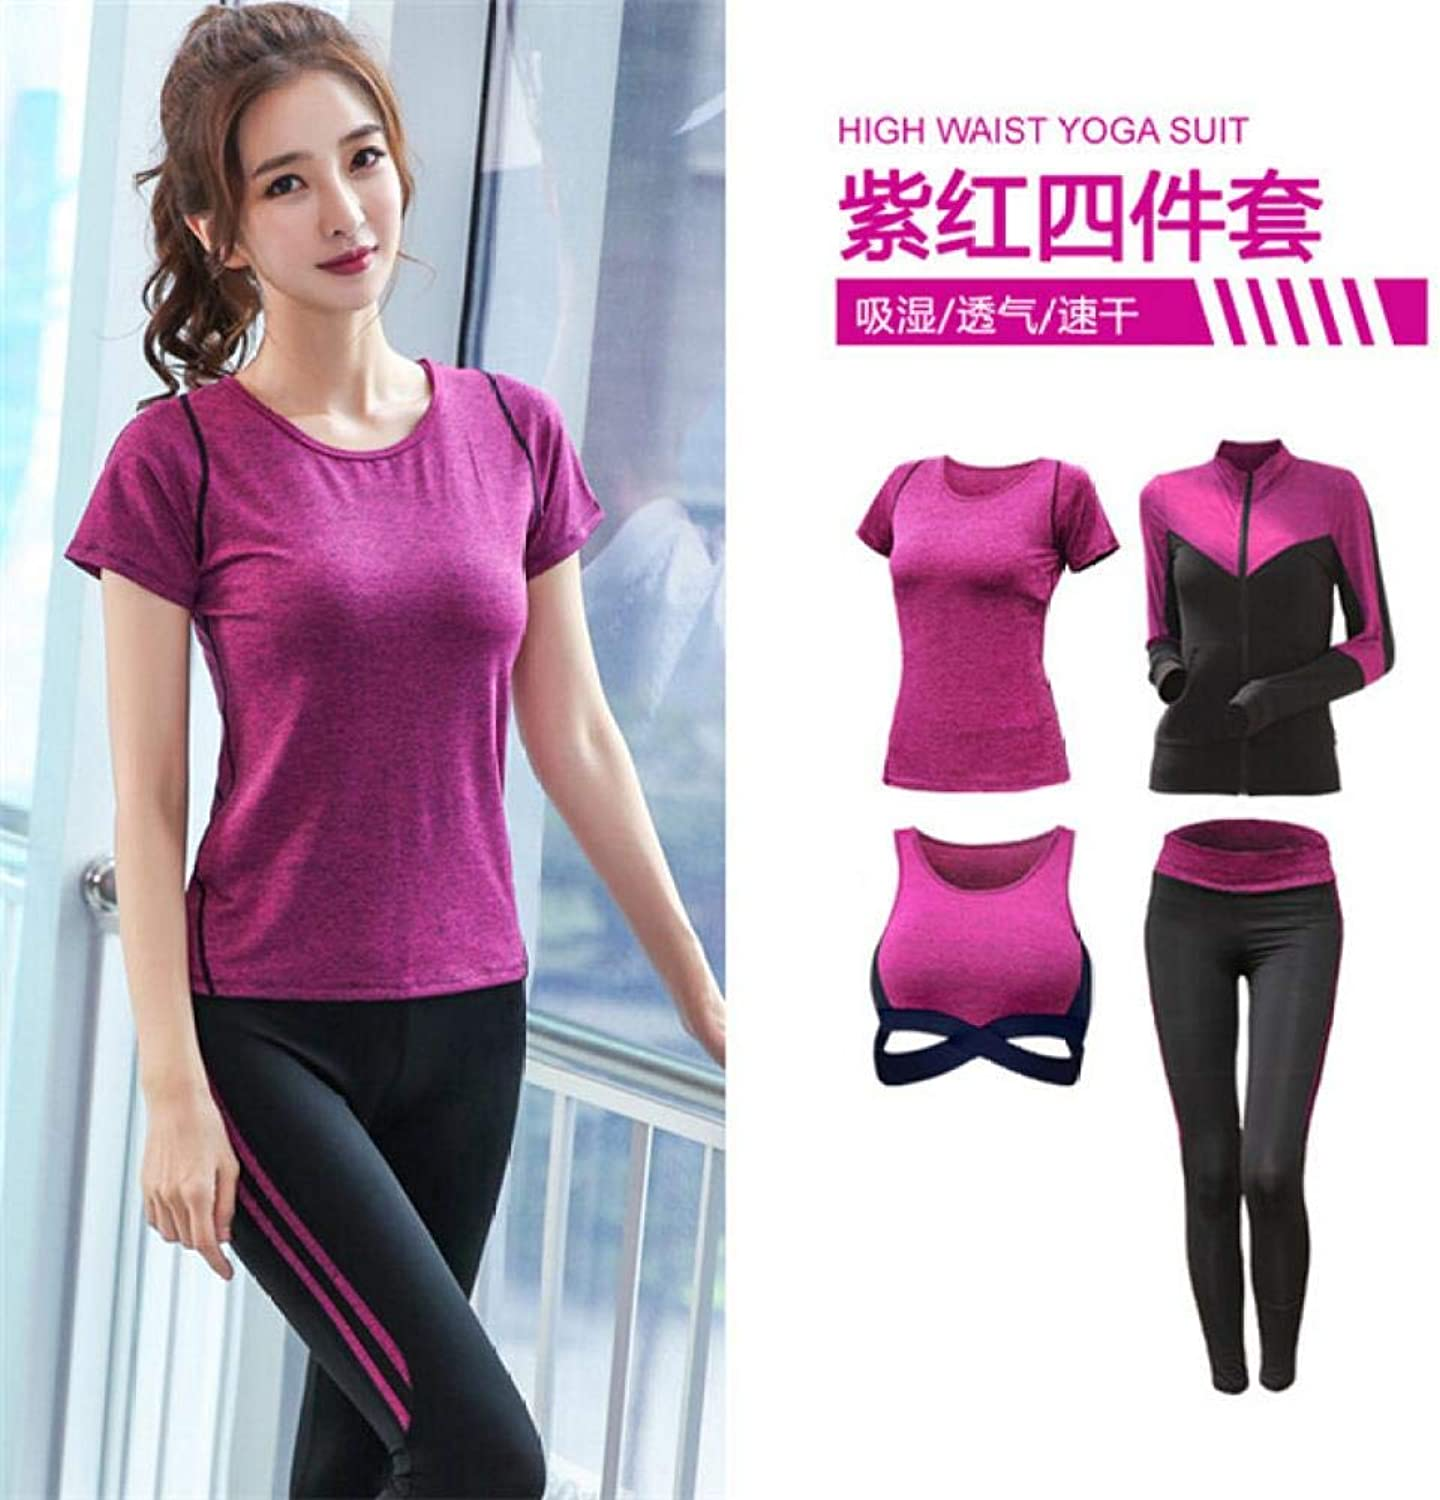 YANGCONG Yoga Fitness Bekleidung 5-Piece Jacket + T-Shirt + Bra + Shorts + Tights Female Yoga Suit Fast-Dry Outdoor Sports Running Fitness Exercise 4 Piece Set d XXL